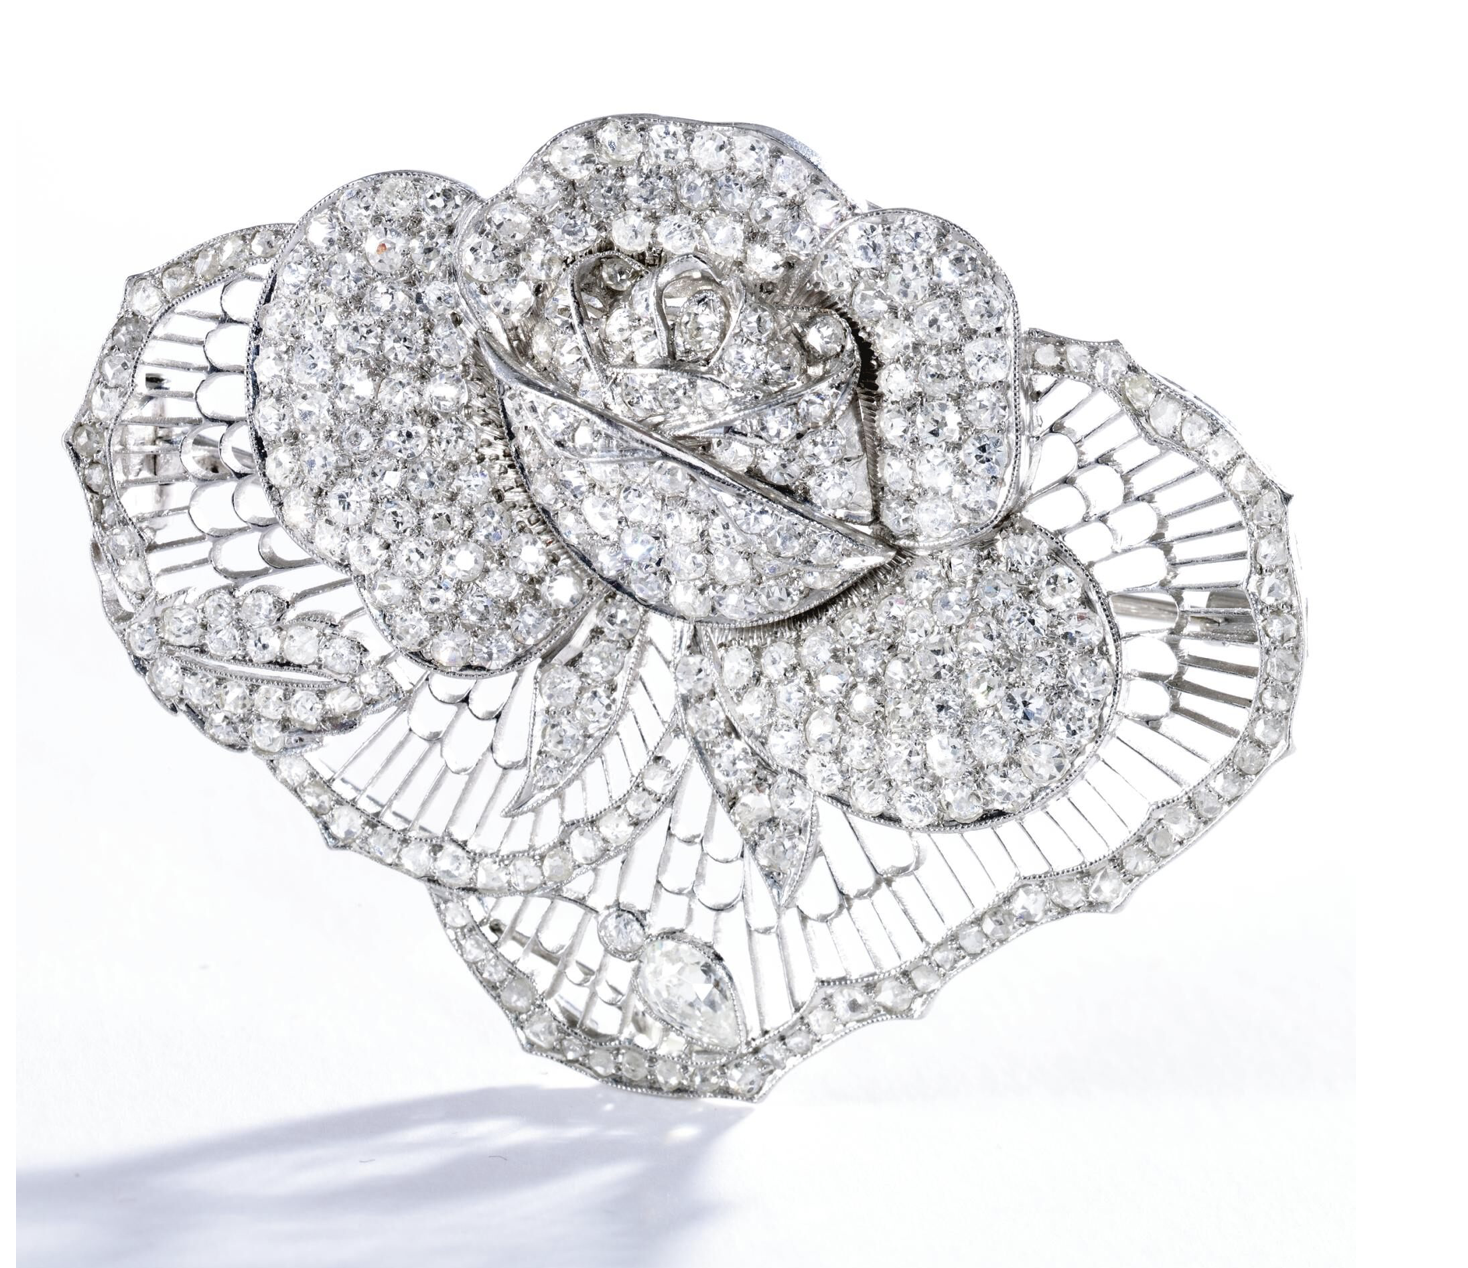 Platinum and Diamond Rose Brooch, Circa 1930 - Credits Sotheby's